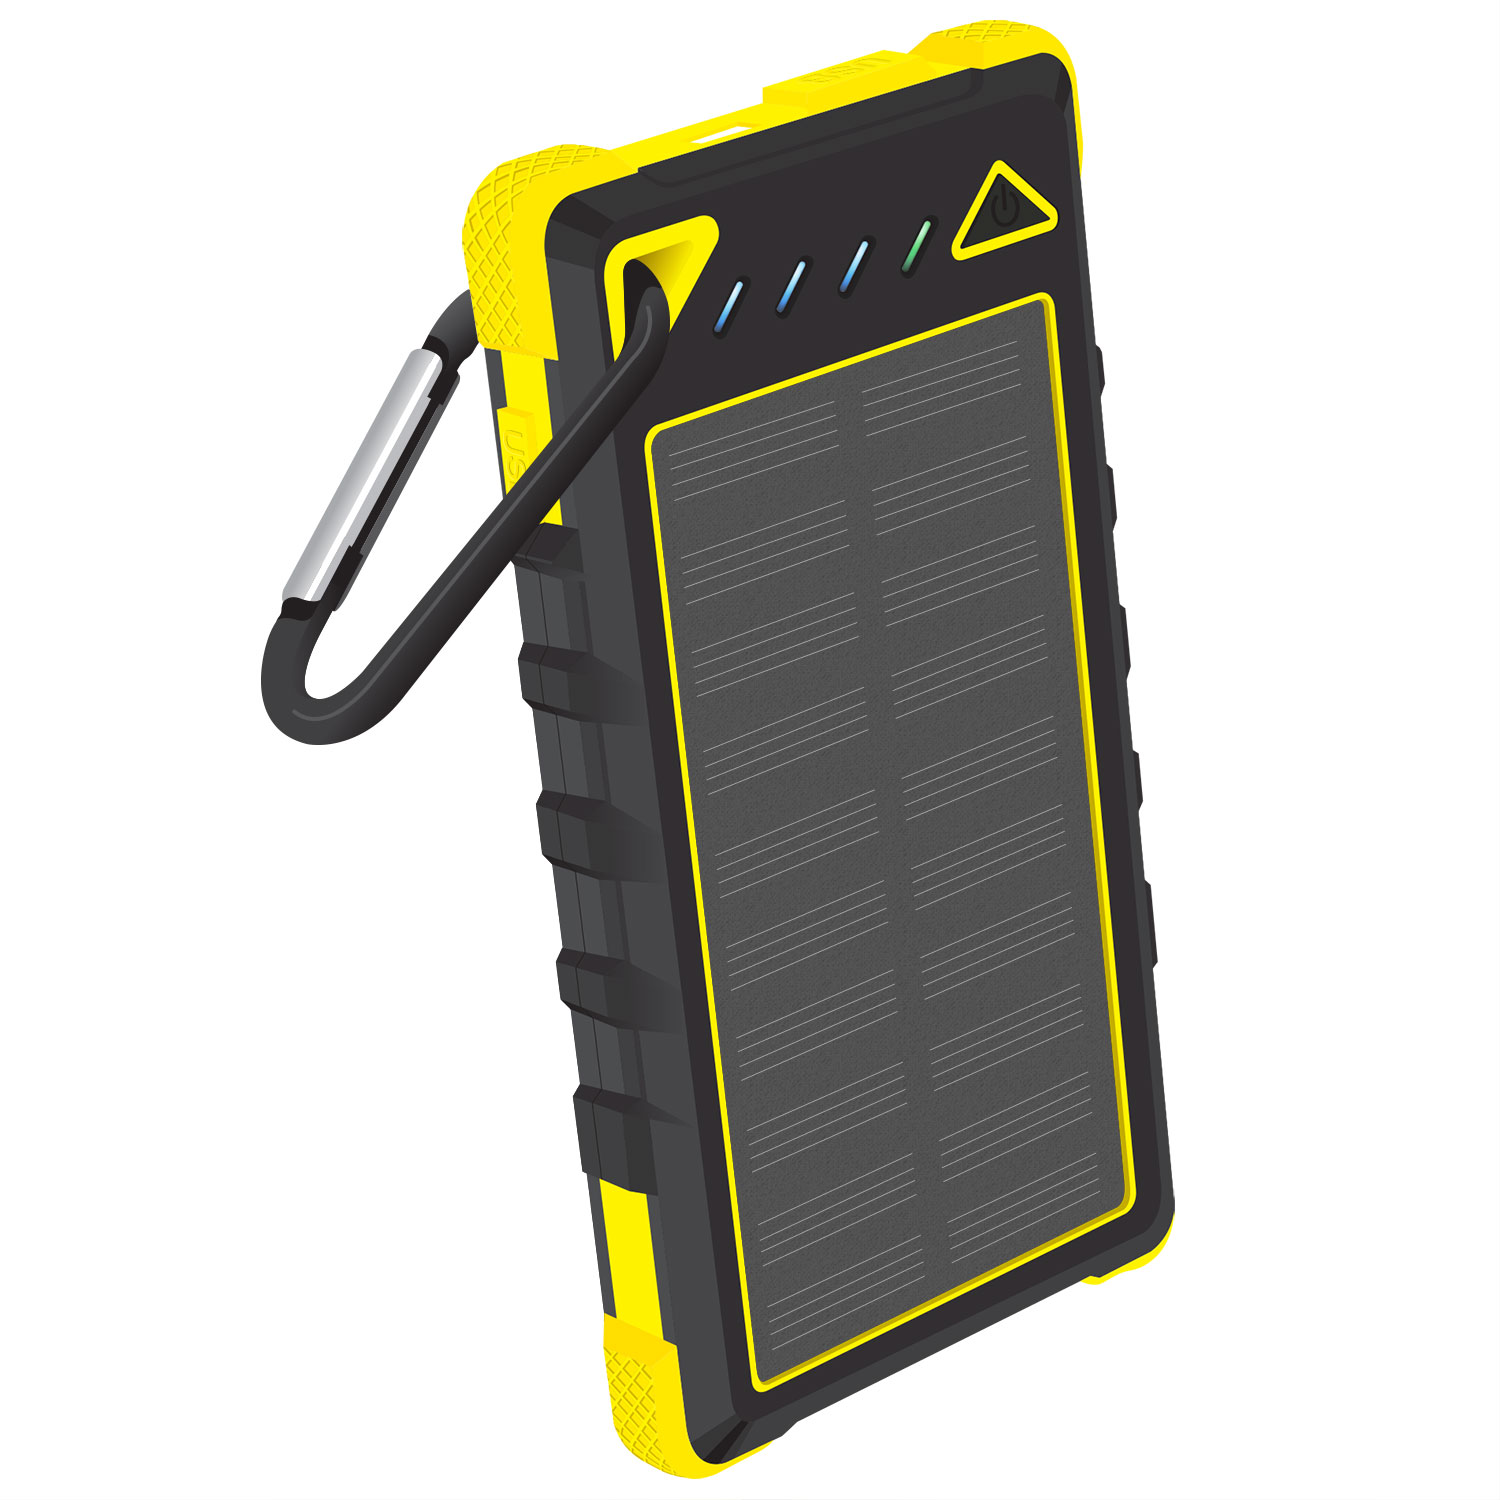 LG Volt 2 Solar Powered Portable PowerBank Yellow